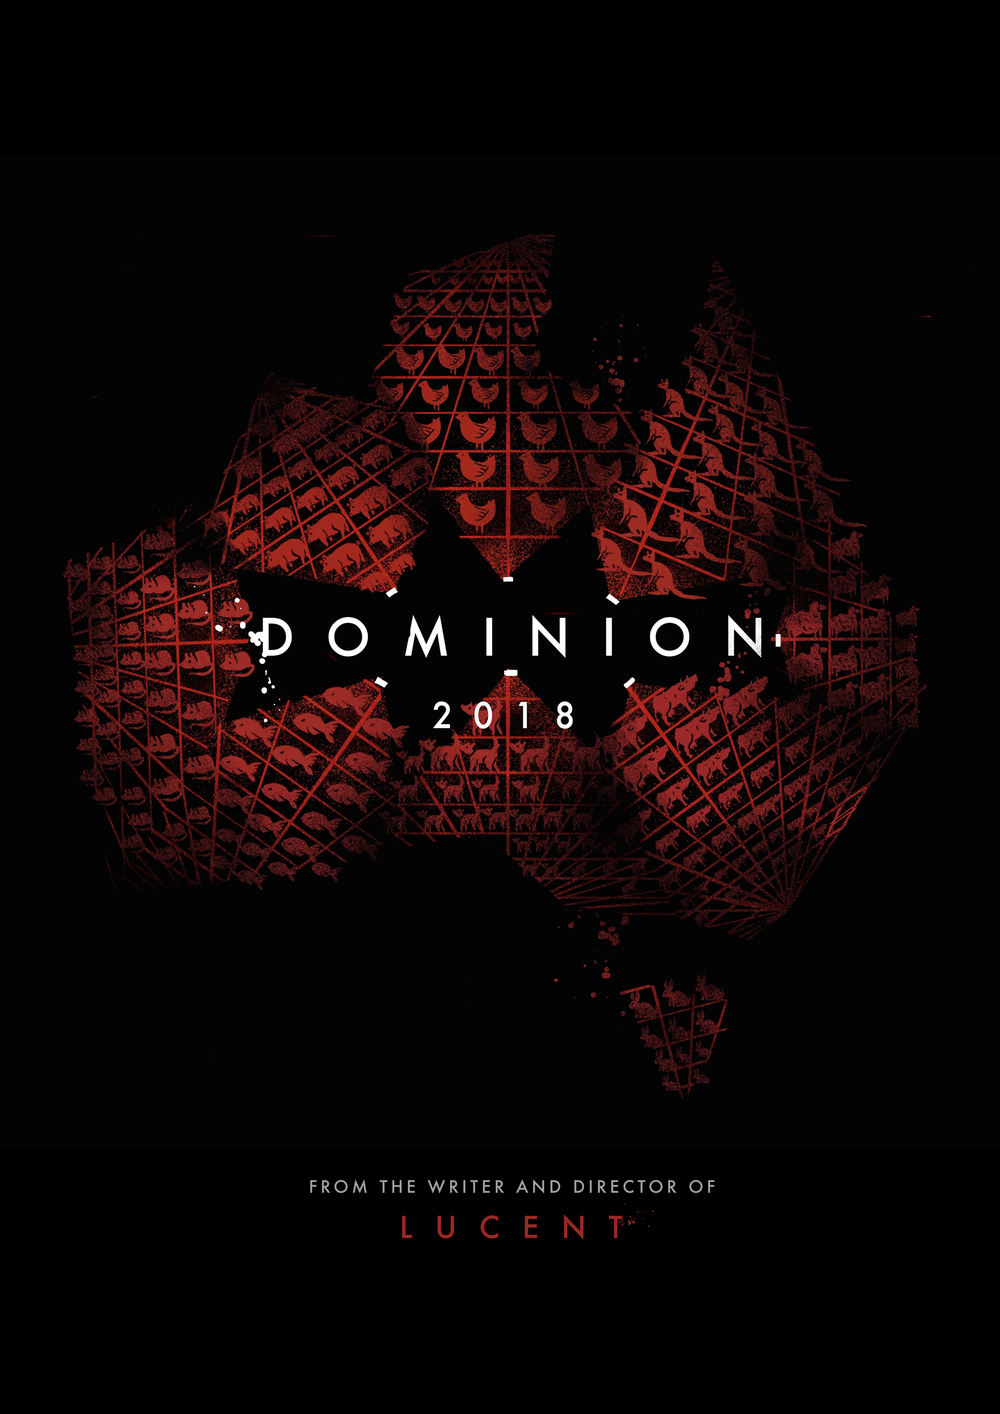 Dominion_poster1.jpg